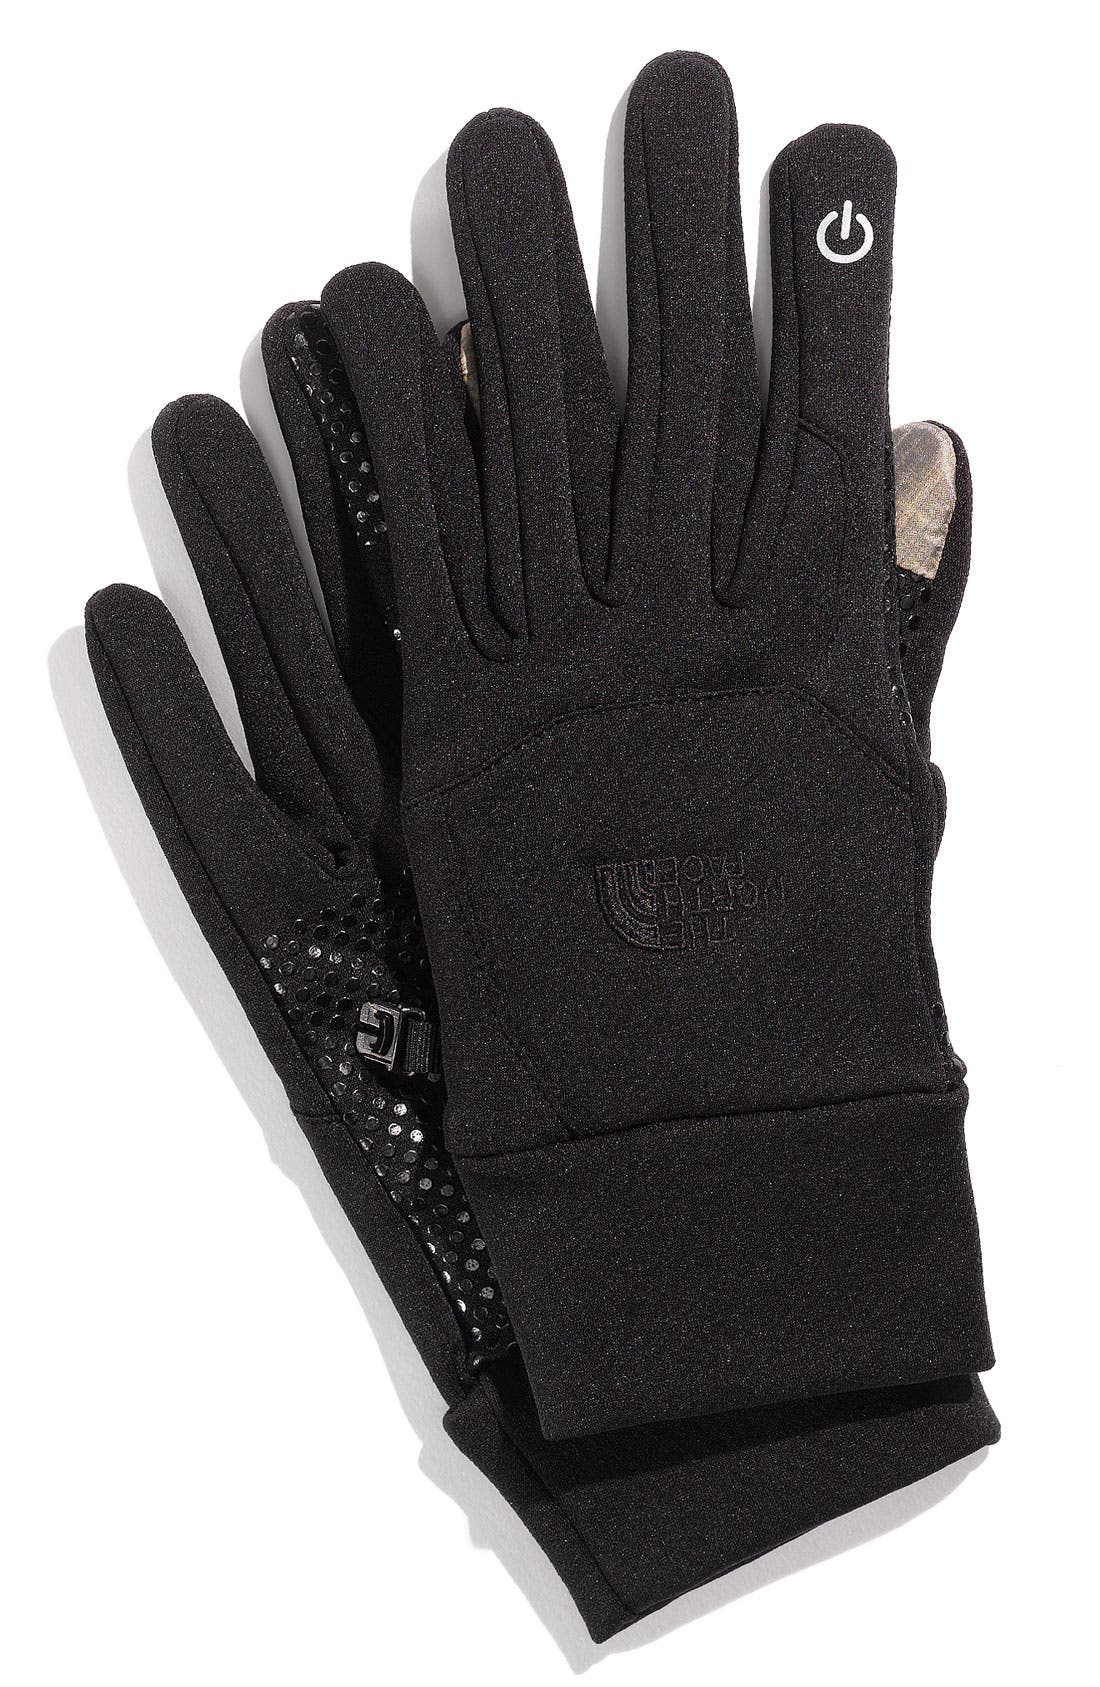 Main Image - The North Face 'E-Tip' Gloves (Men)